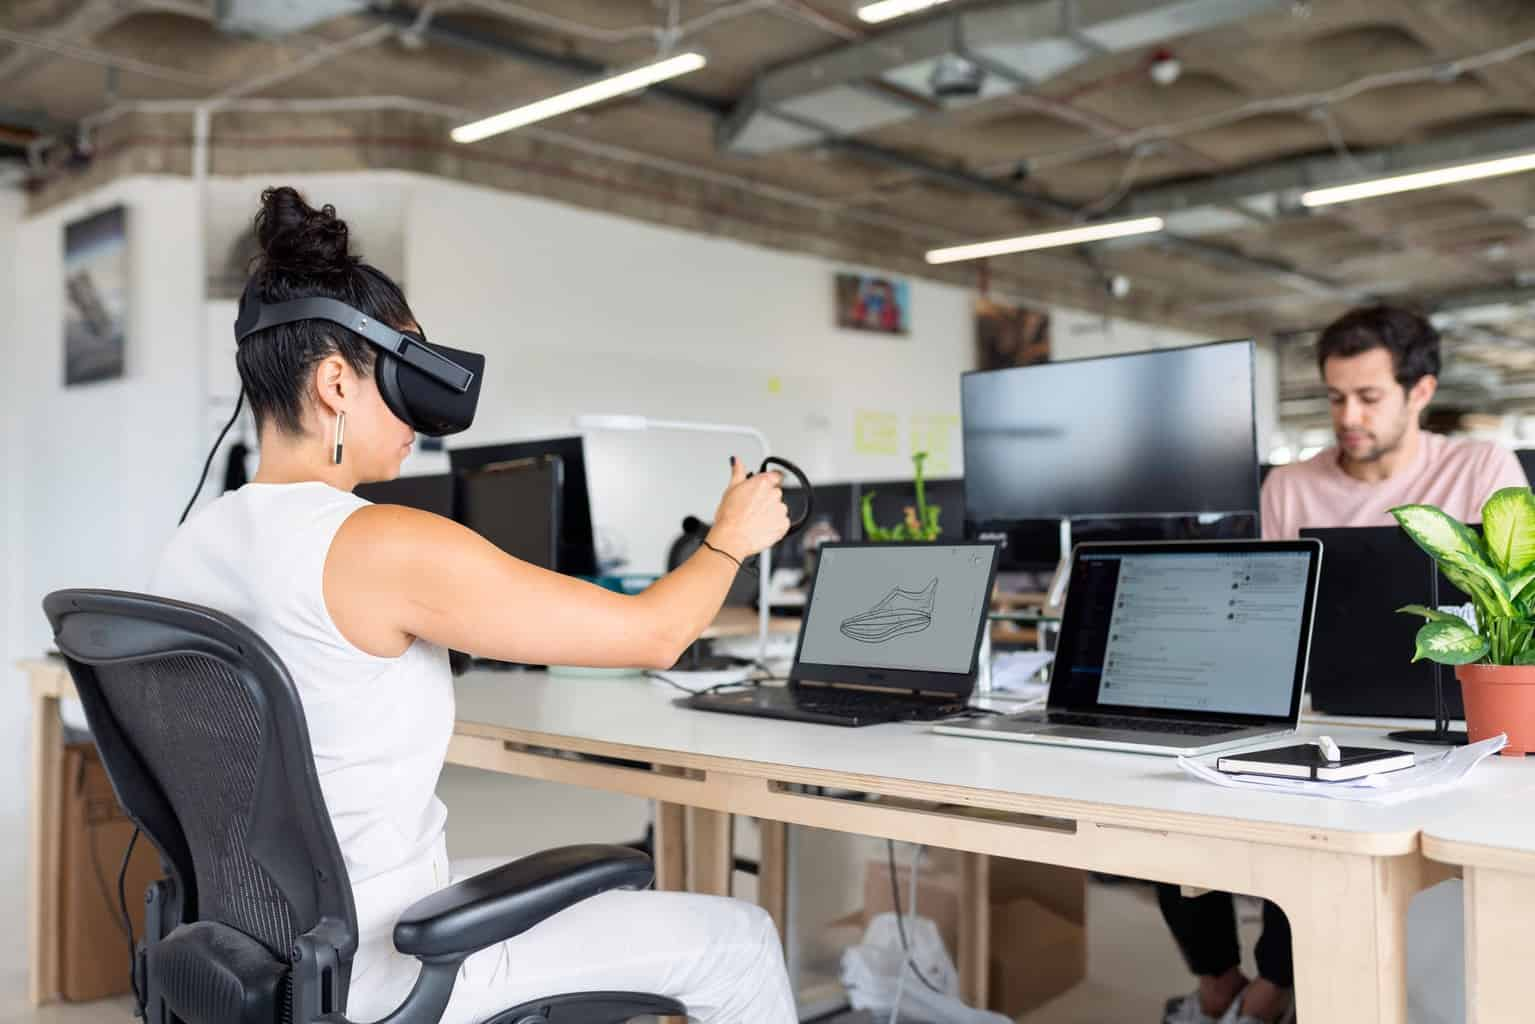 woman in white tank top using black laptop computer with vr headset